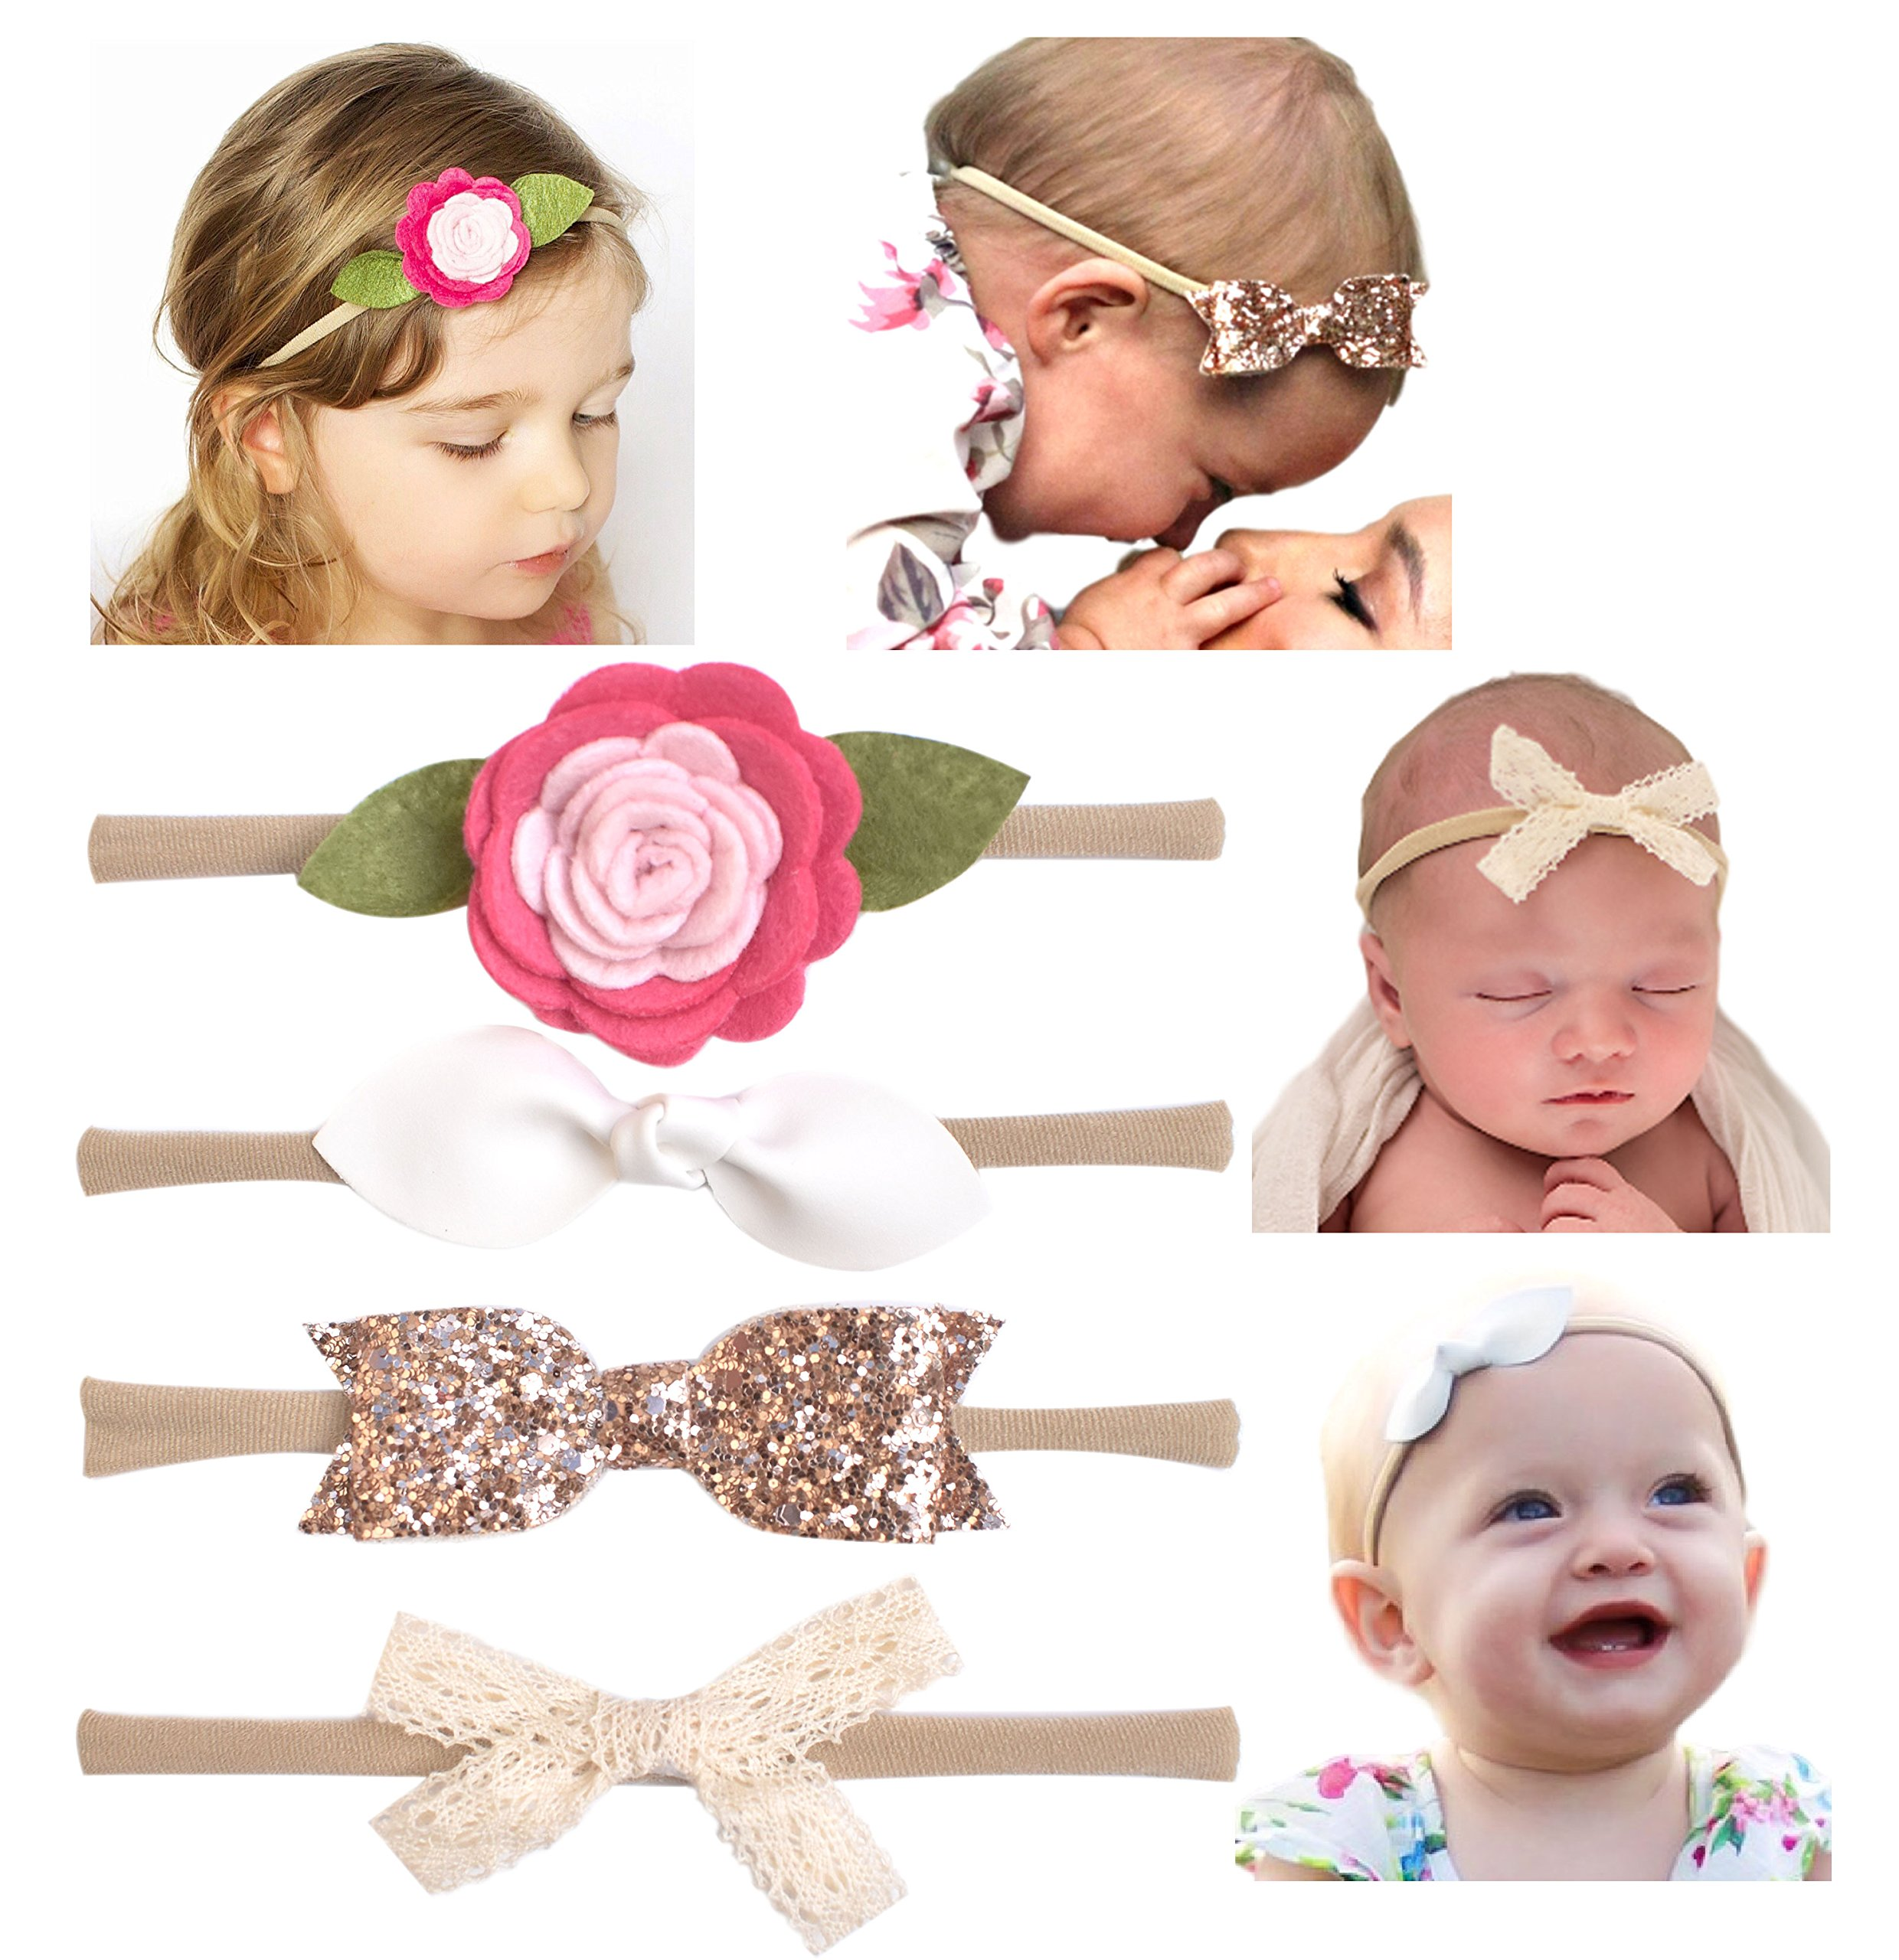 California Tot Soft & Stretchy Headbands for Baby, Toddler, Girls, Mixed Set of 4 (Shabby Chic)